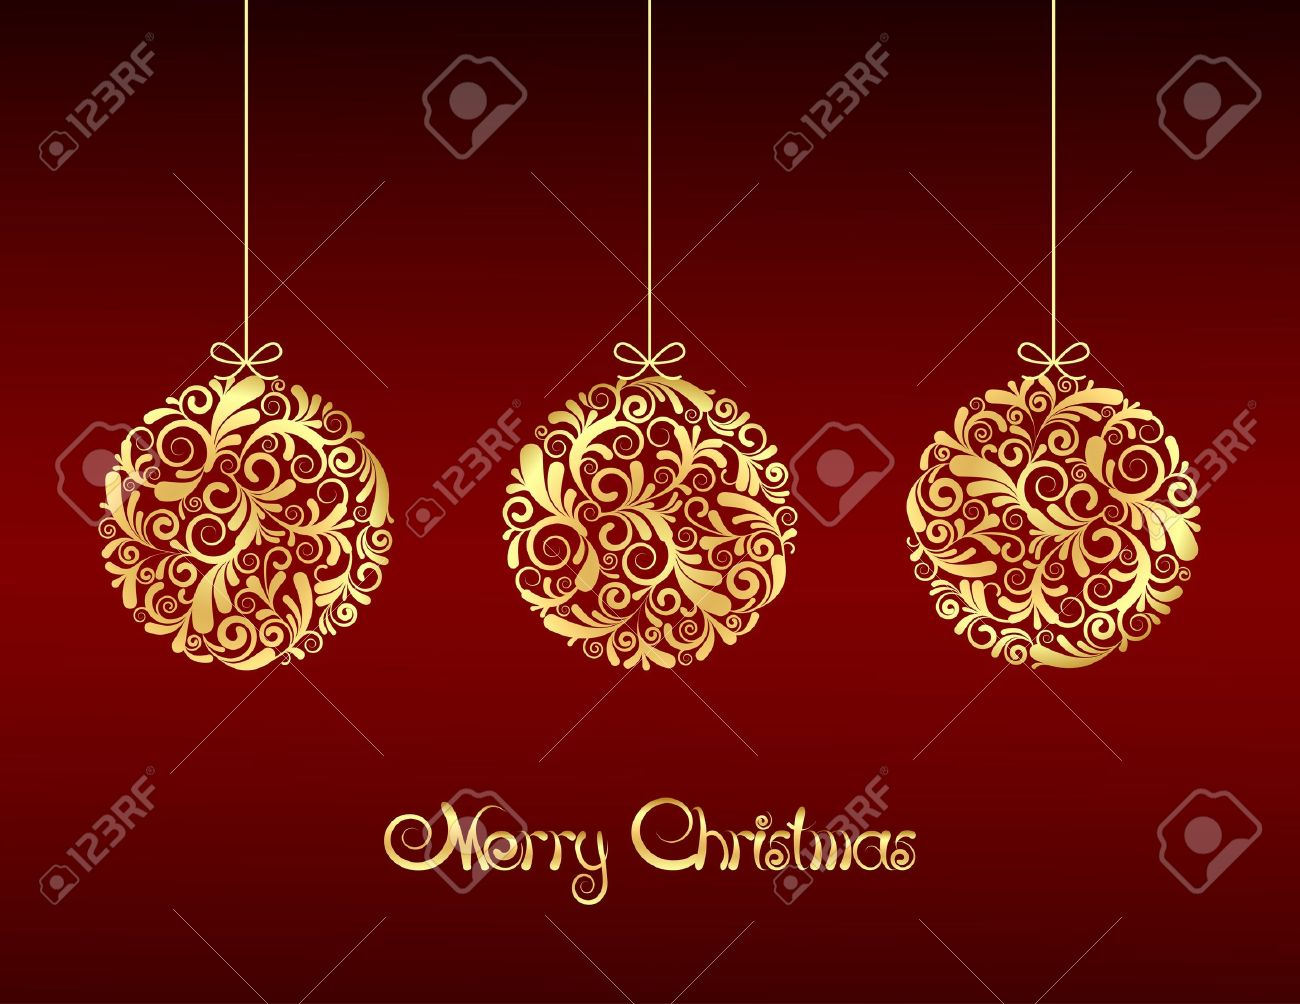 Red and gold christmas ornaments - Gold Christmas Balls On Red Background Illustration Stock Vector 15928538